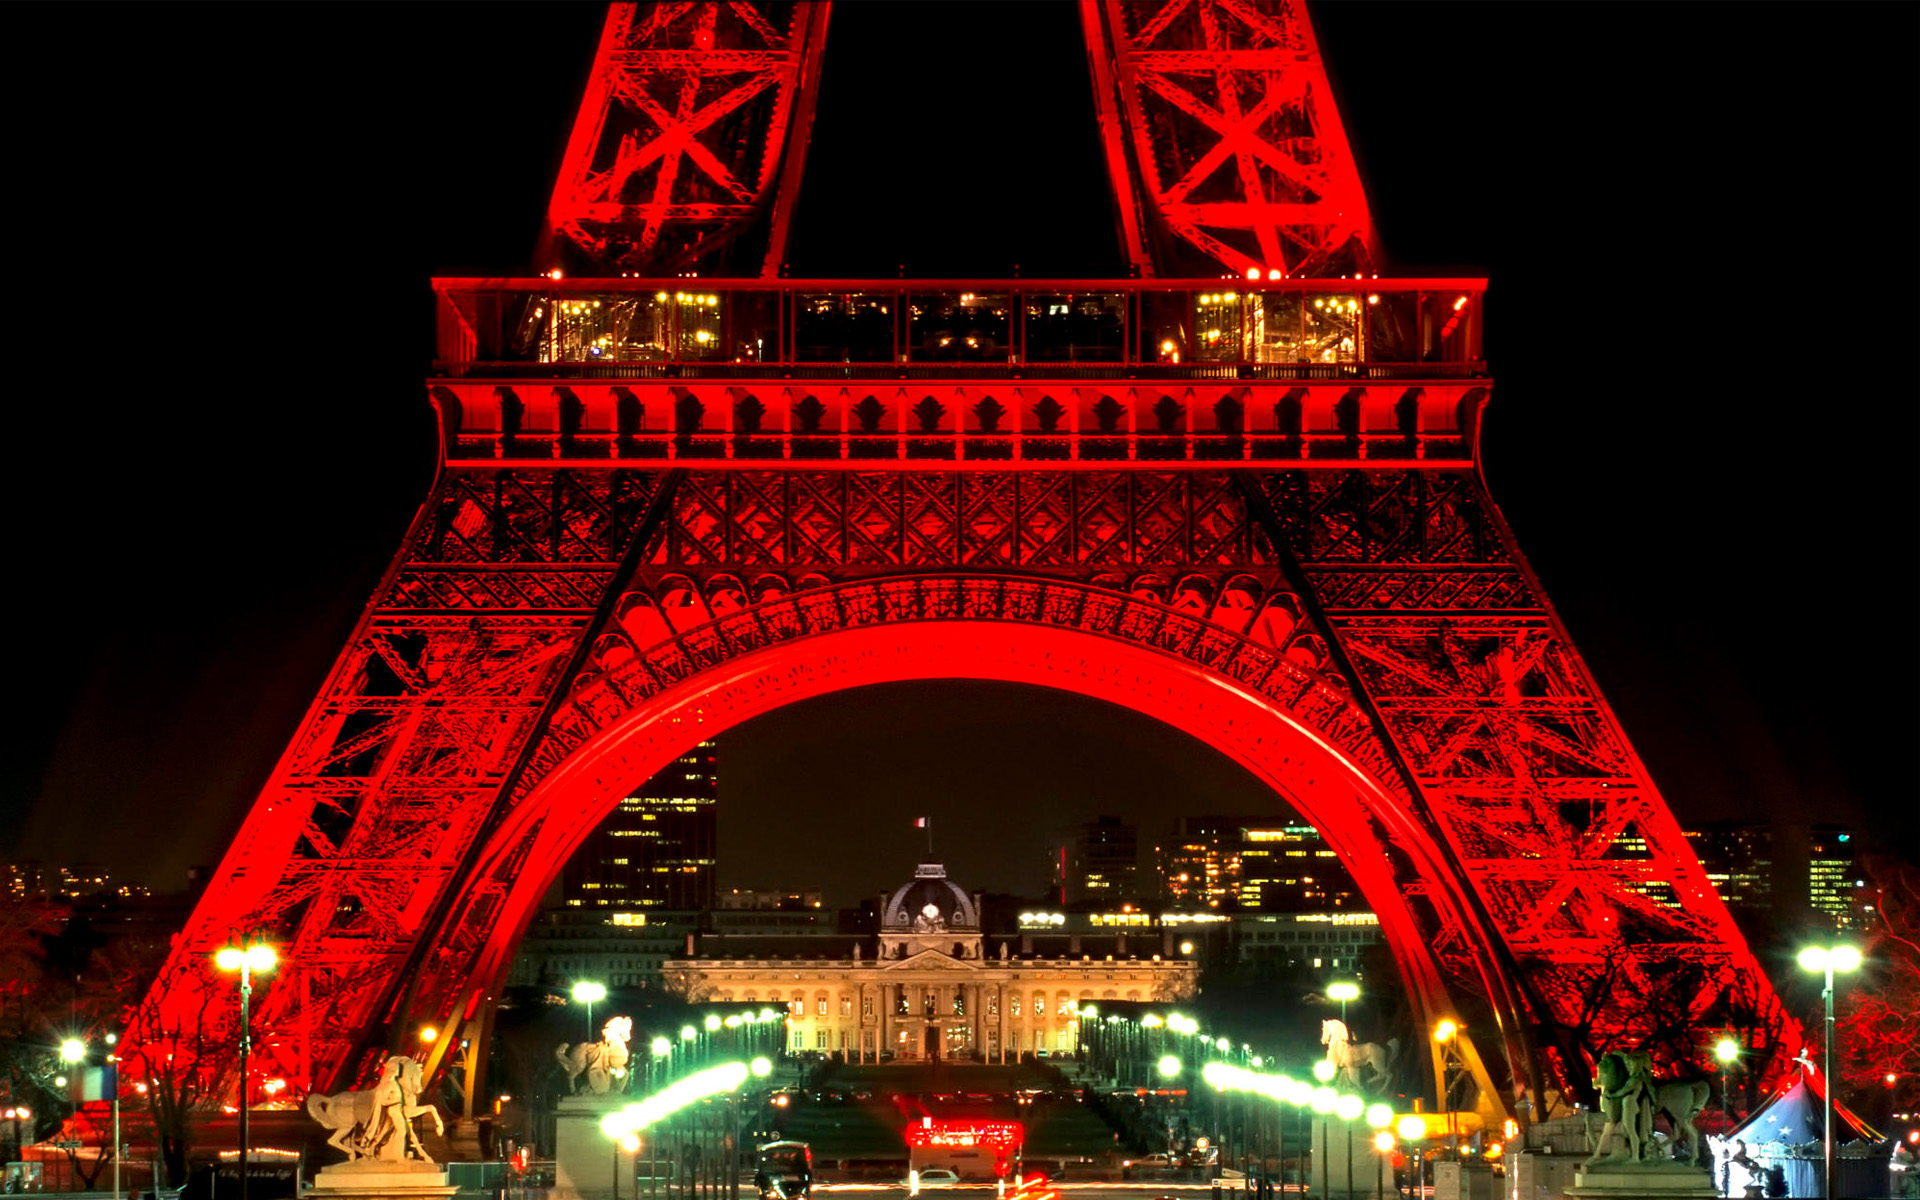 Eiffel Tower At Night Paris France 4203287 1600x1200 All For Desktop